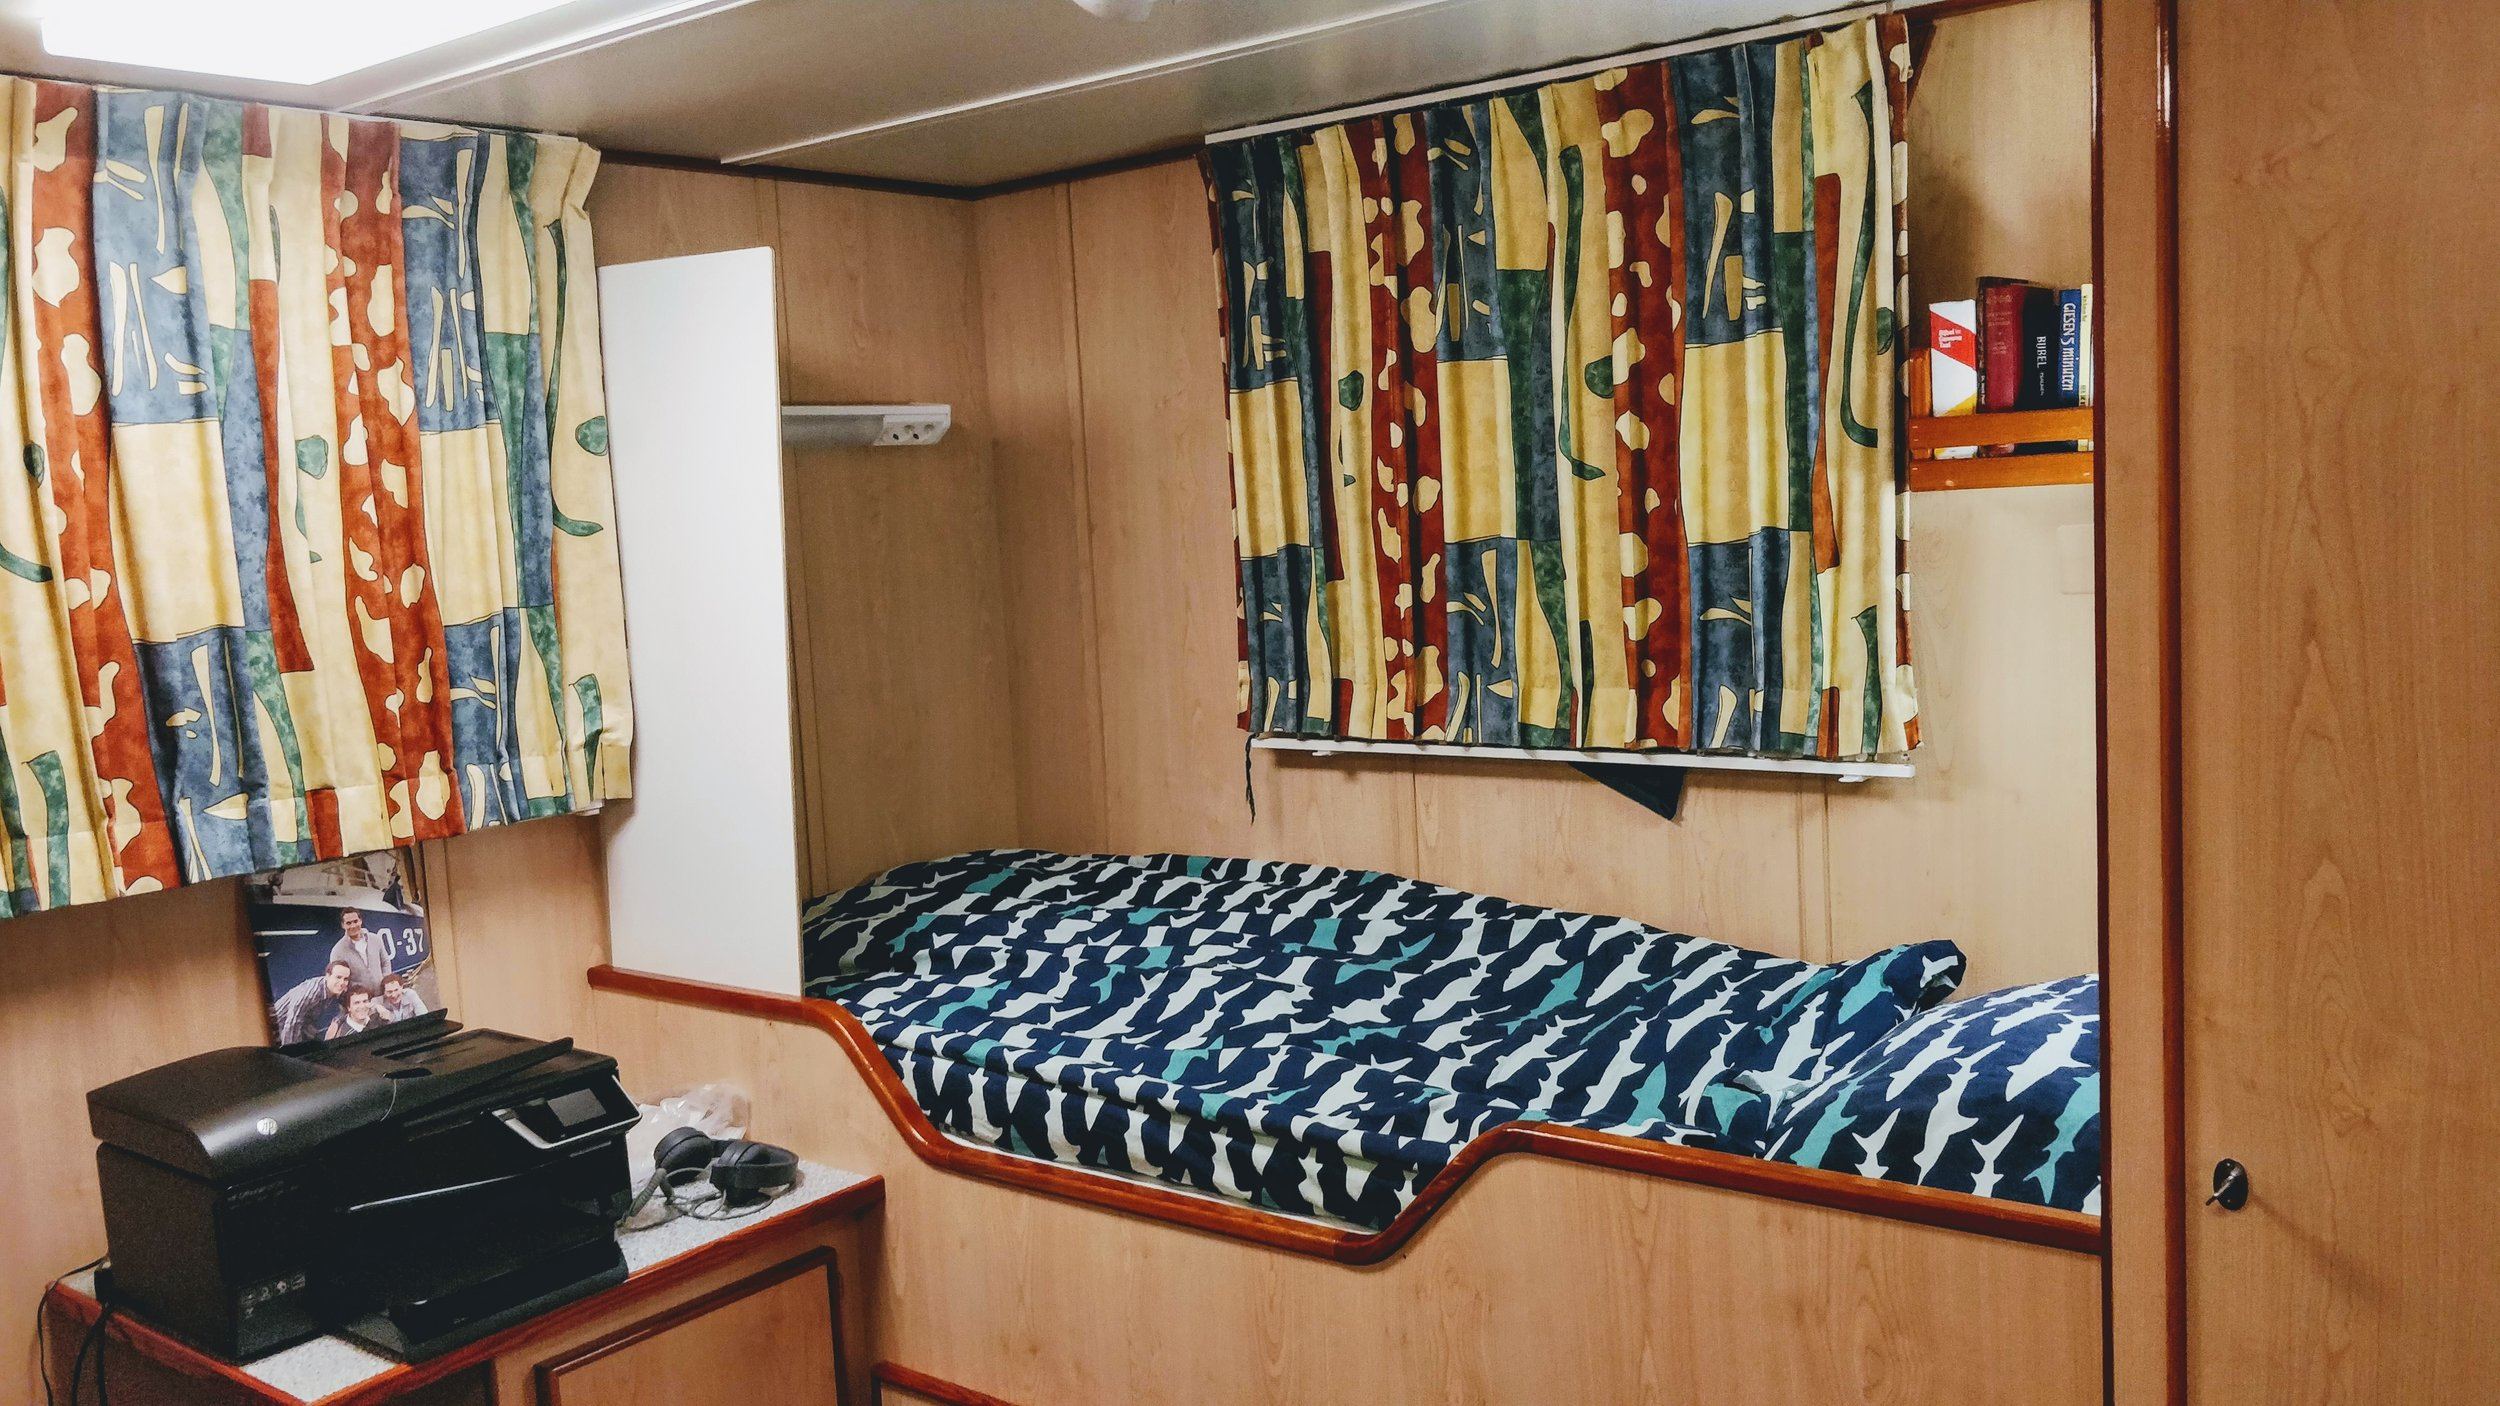 My cabin for the coming days, including bedding with a shark pattern.